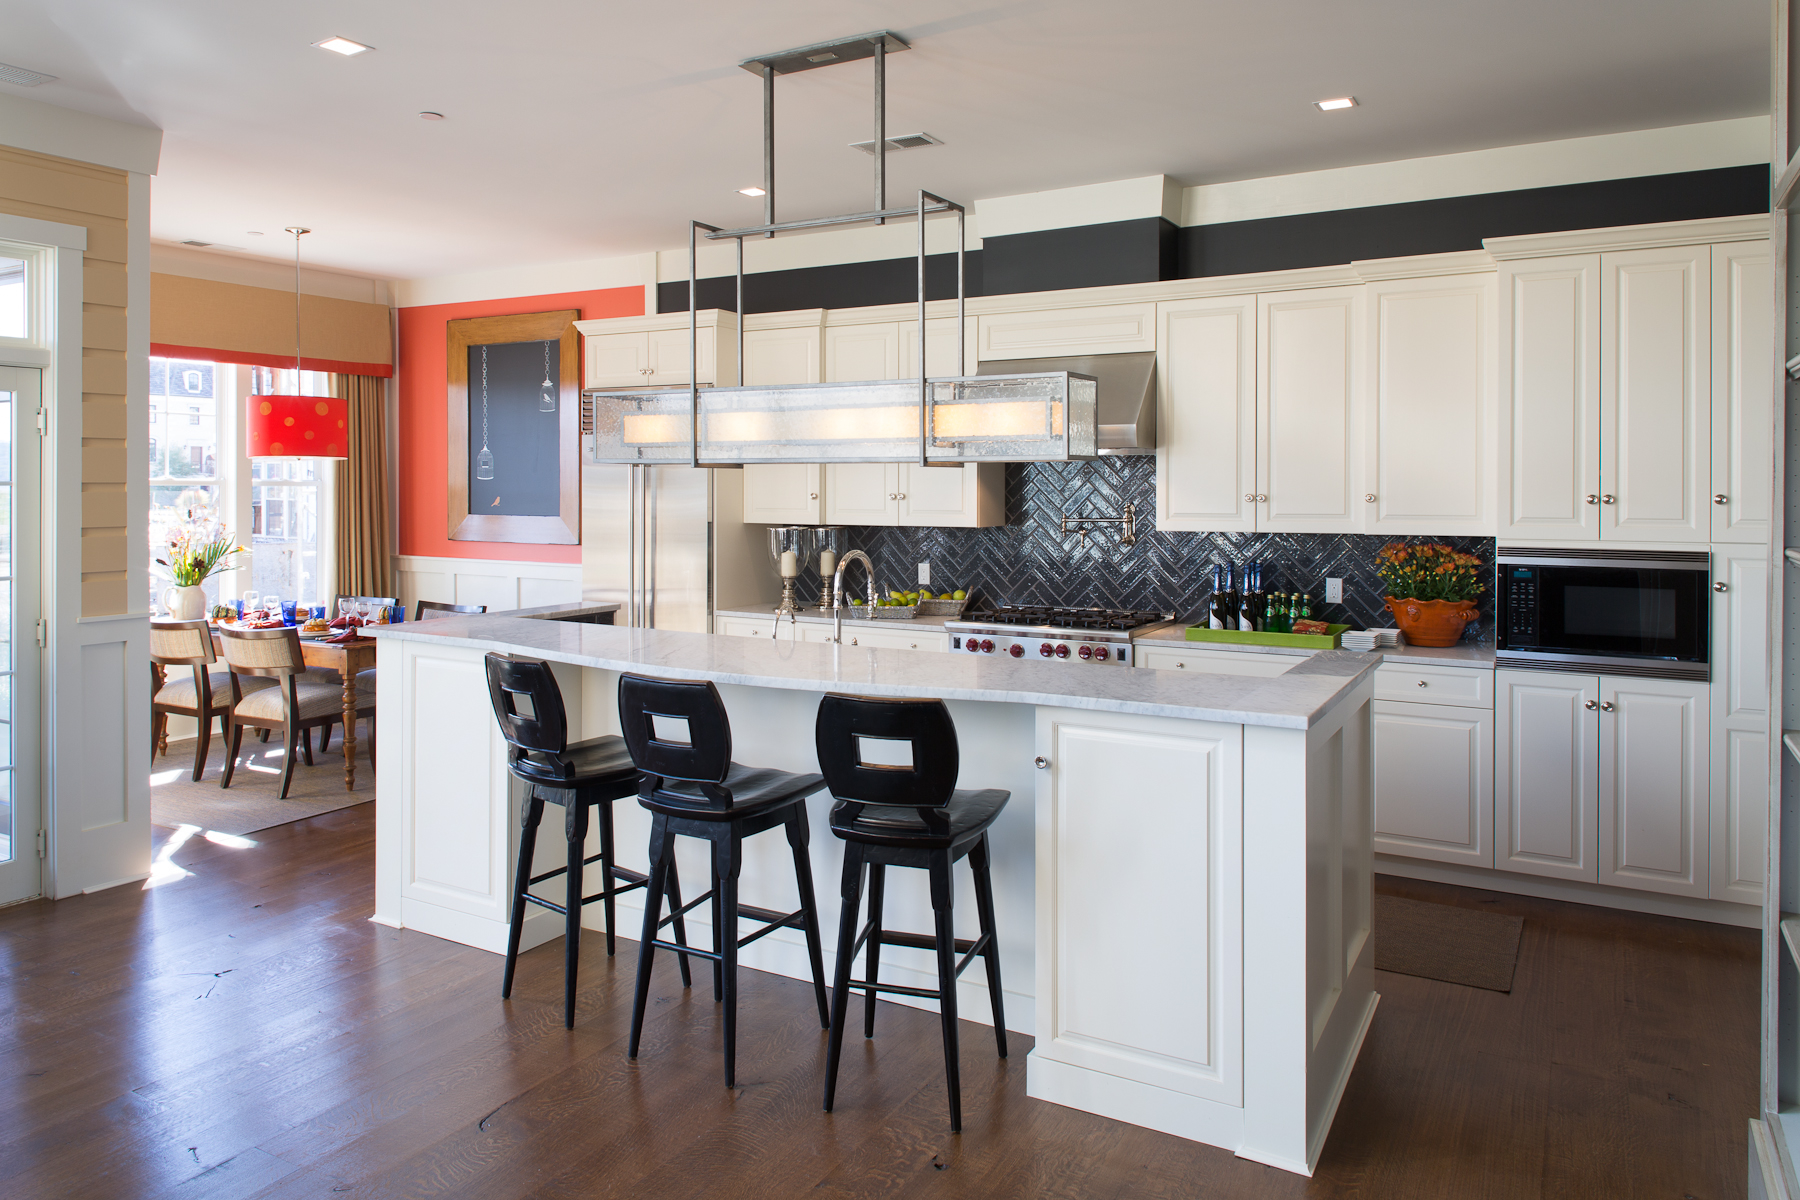 Featured Image of Beauty American Kitchen In Urban Style